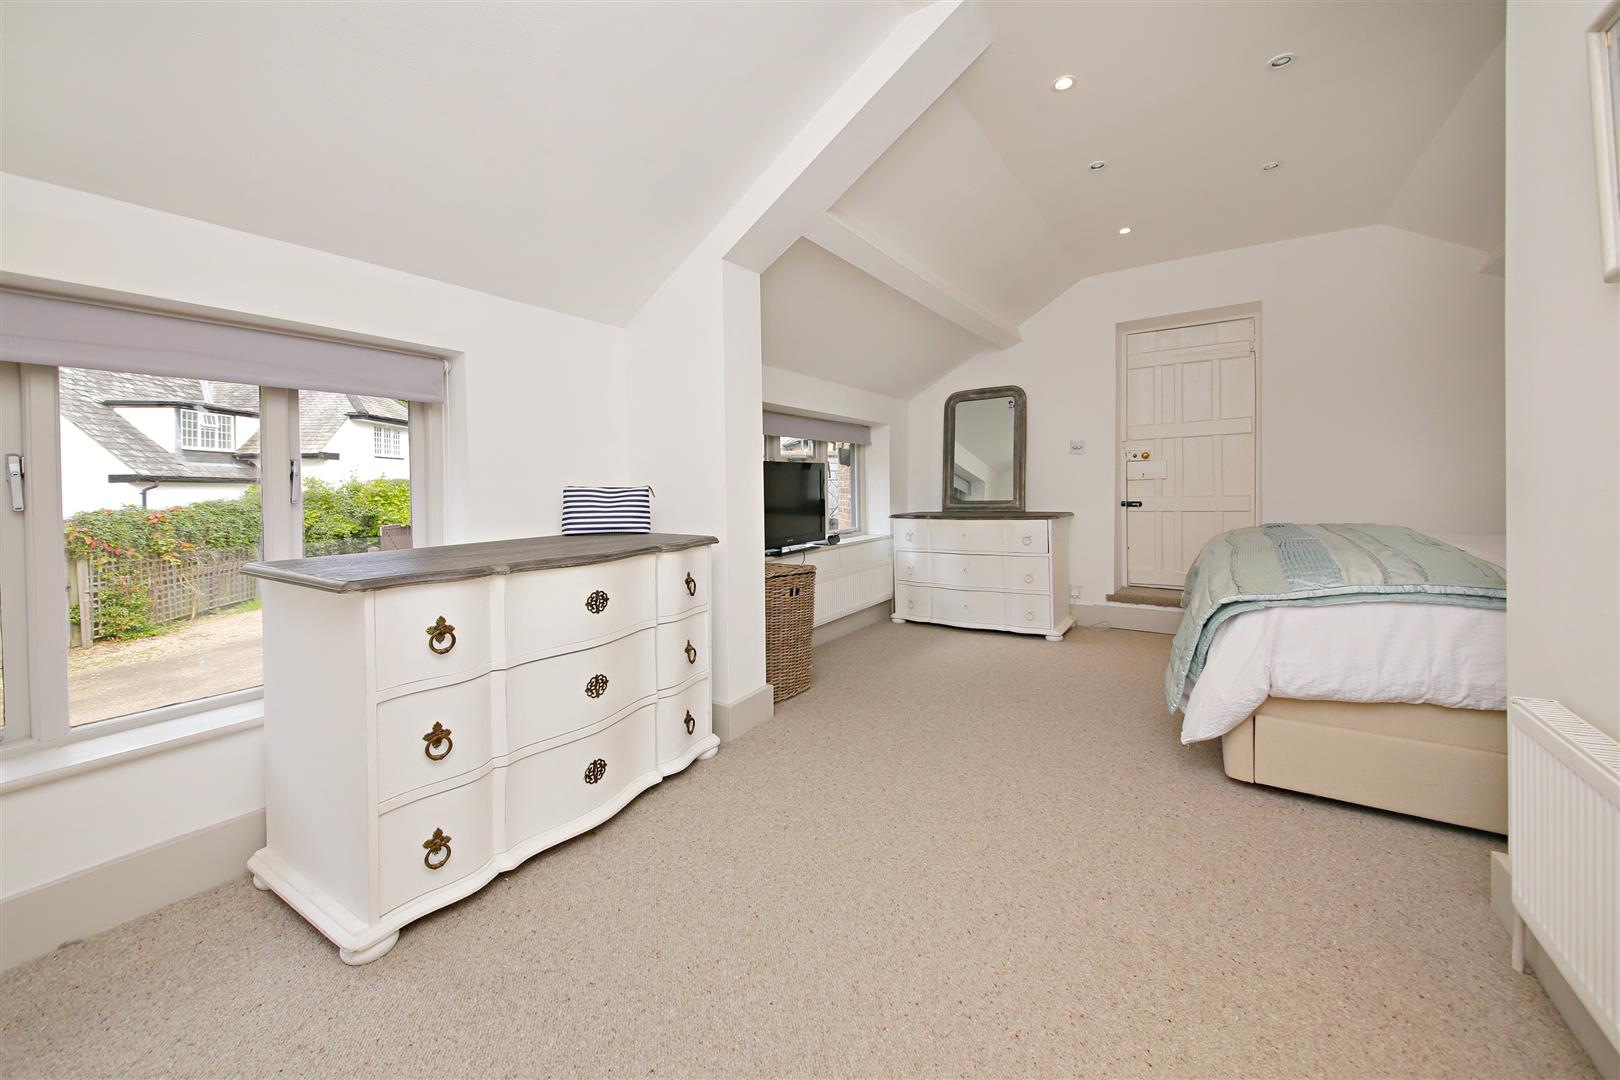 5 bed to rent in Letchmore Heath - (Property Image 10)